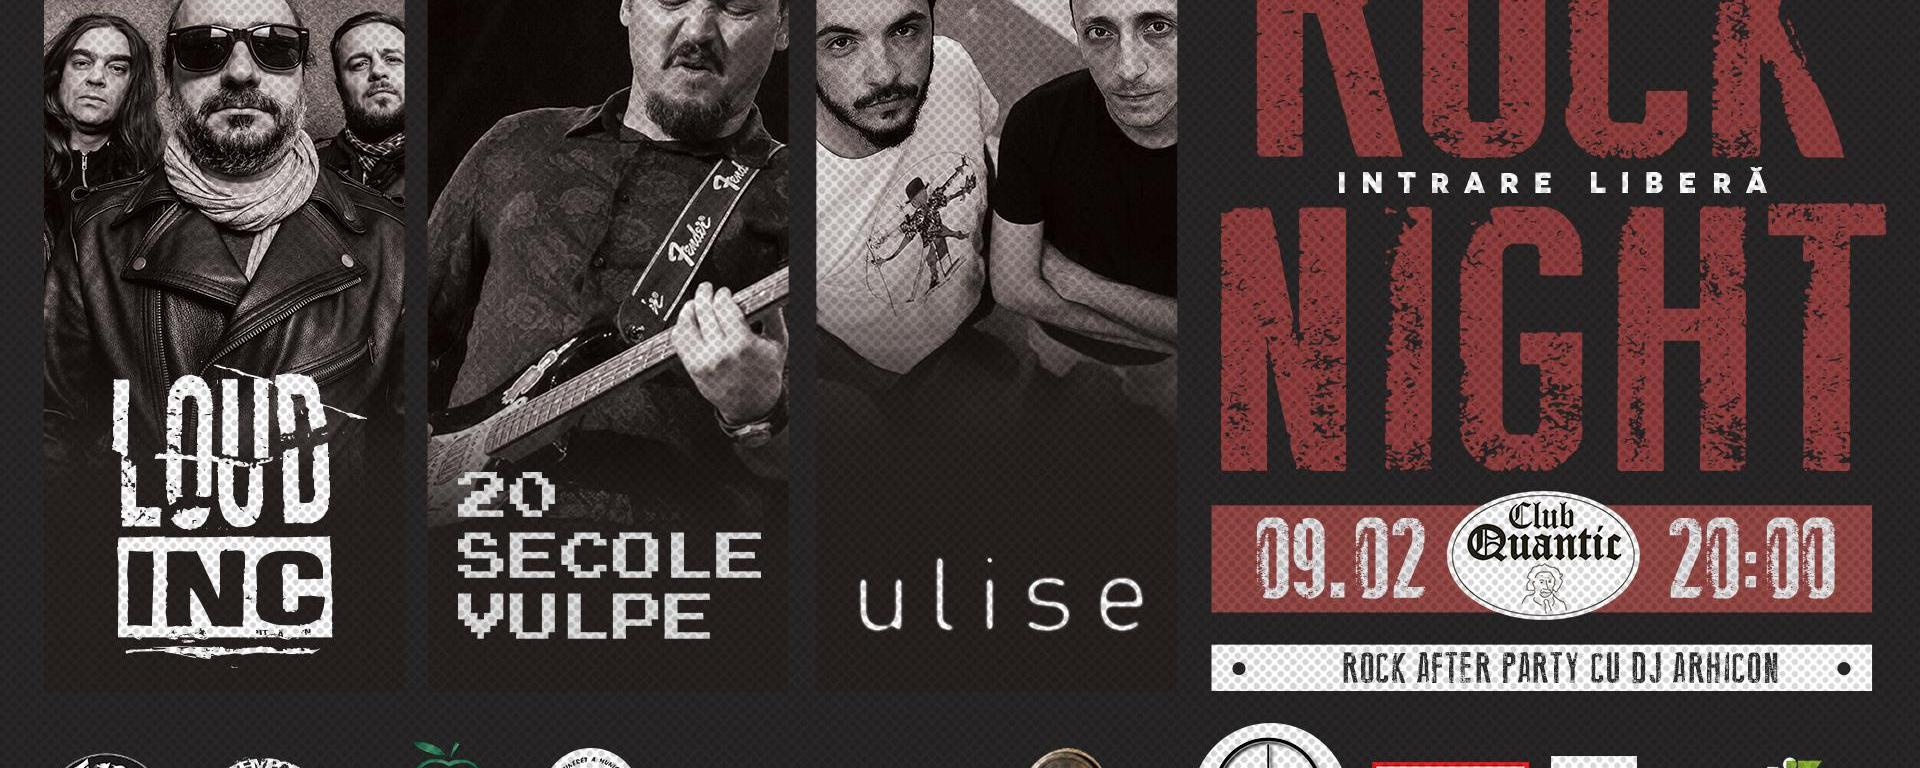 Ulise || Loud Inc. || 20 secole vulpe Live in Quantic – 9.02